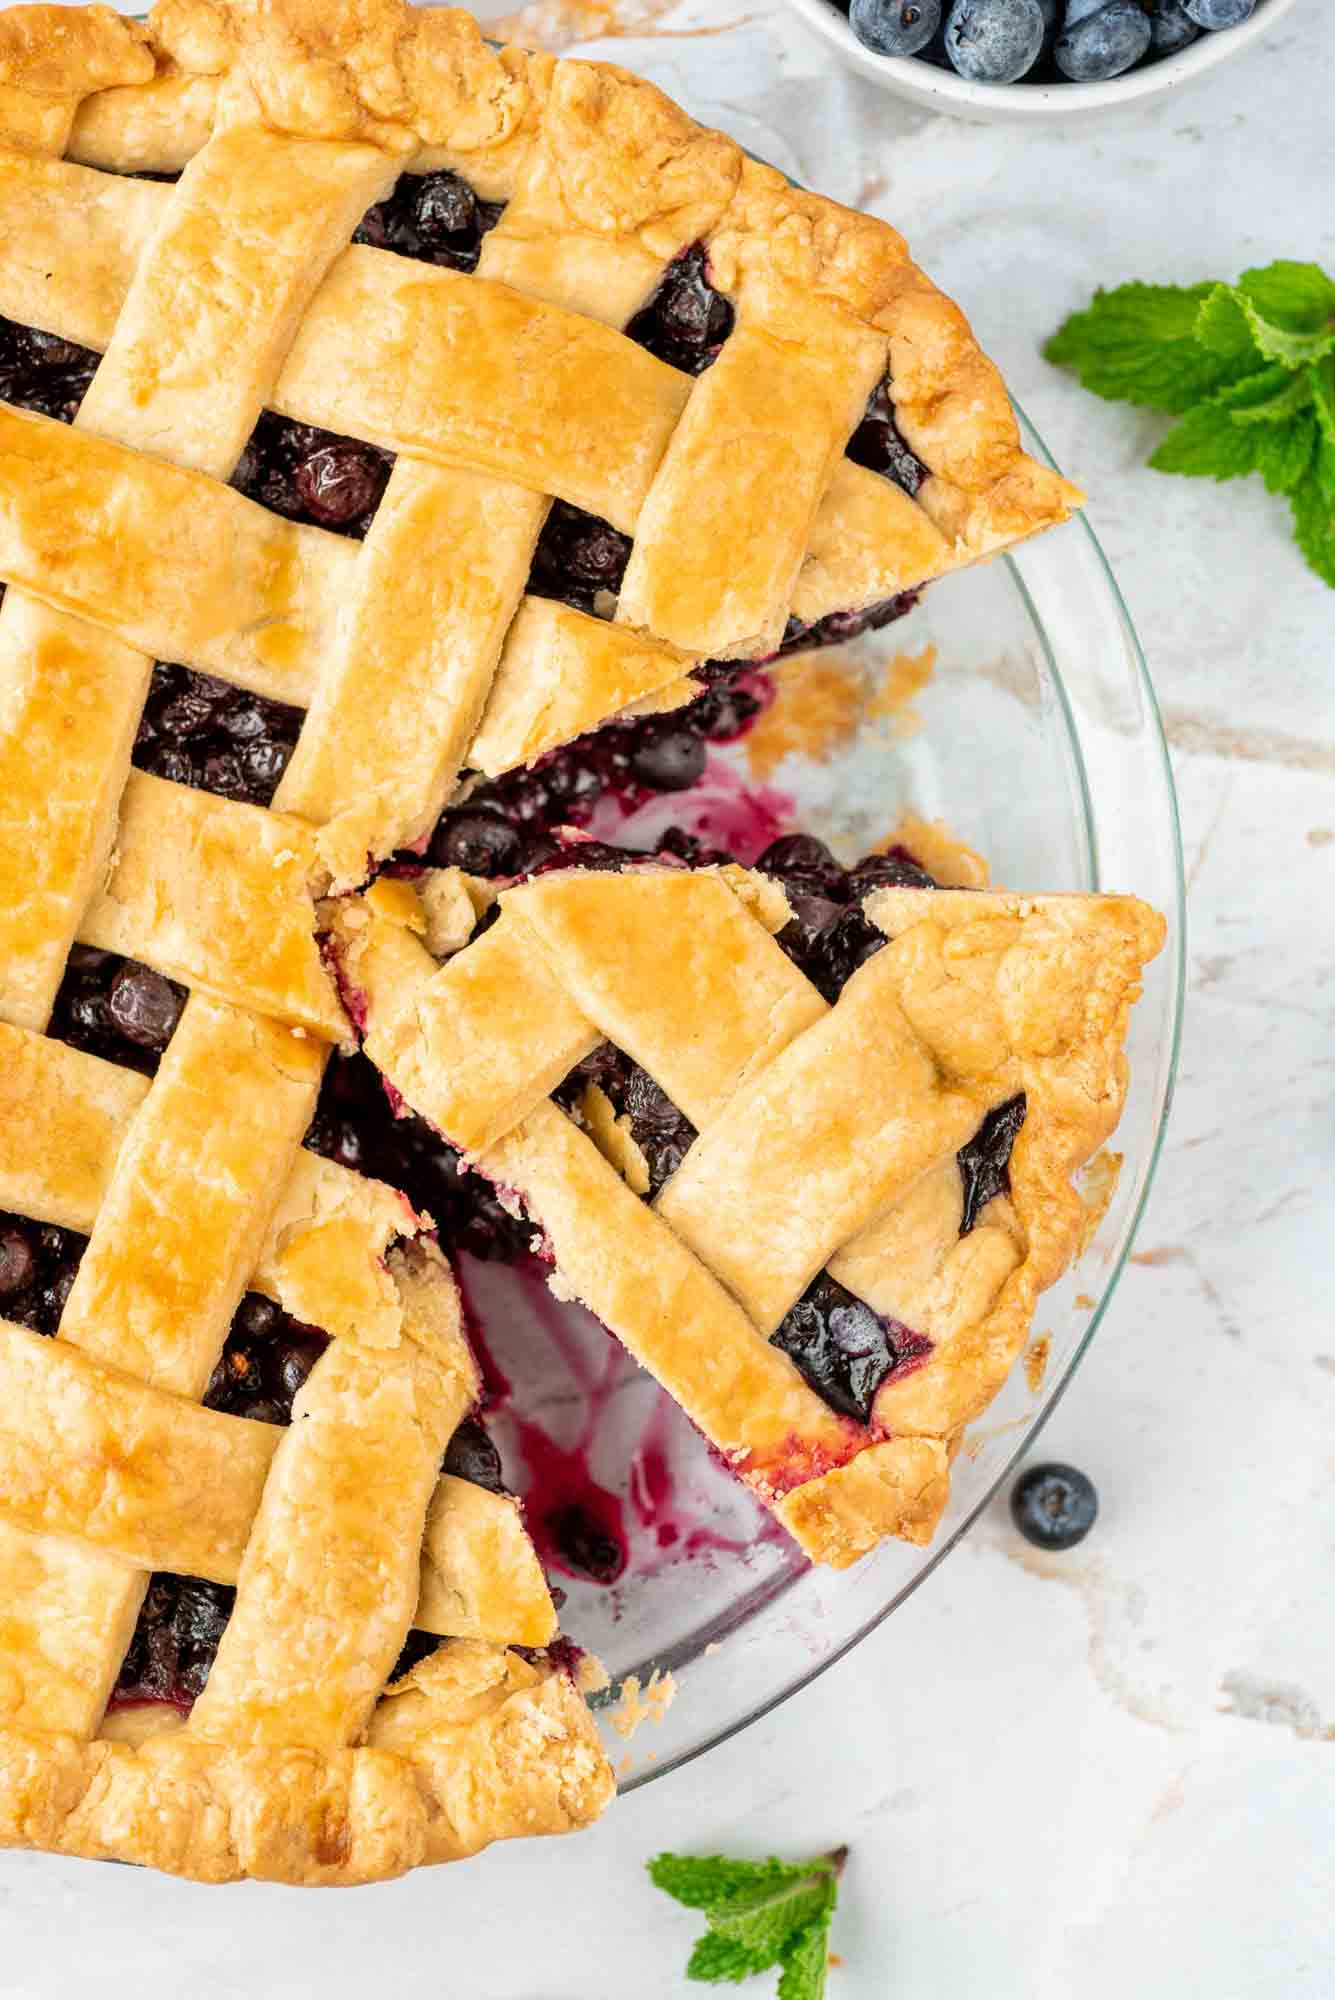 overhead shot of blueberry pie in a pie dish, with a slice of the pie, mint leaves on the side and some fresh blueberries